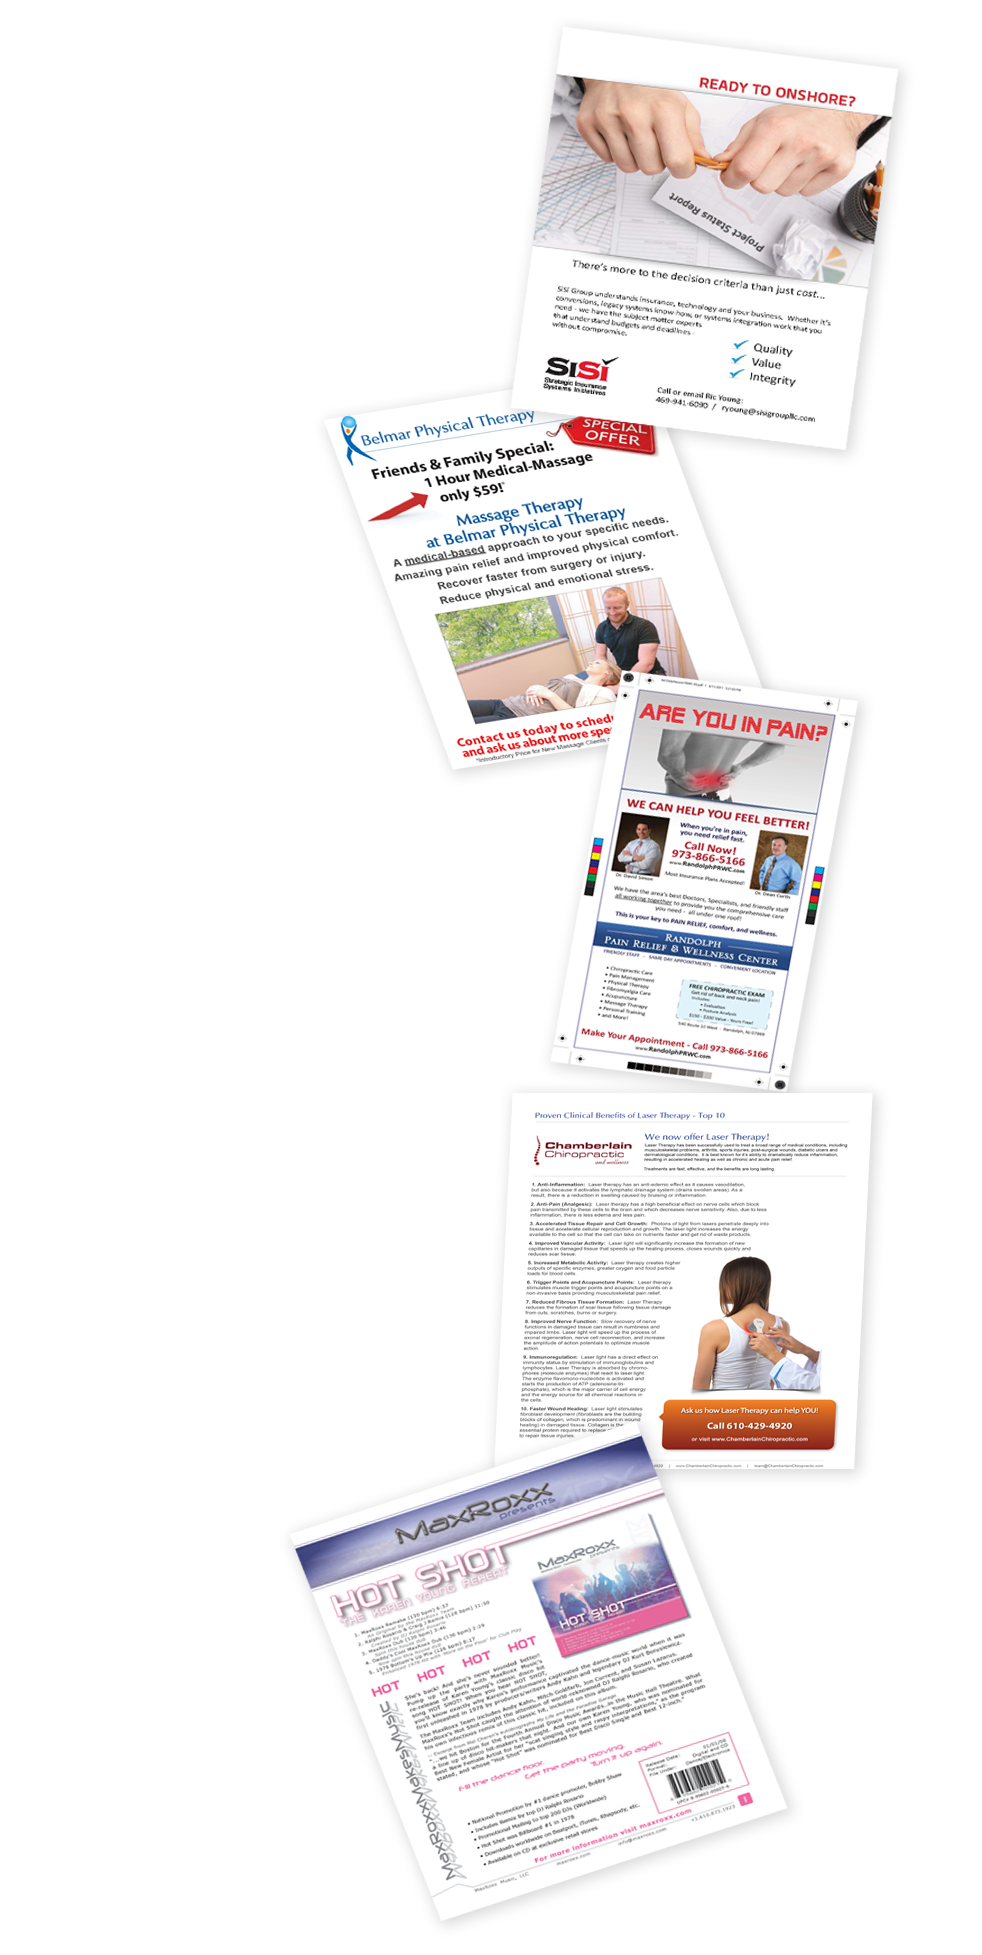 Print Media Marketing Materials Business Consulting New Ride Design SEO Best business development Colorado